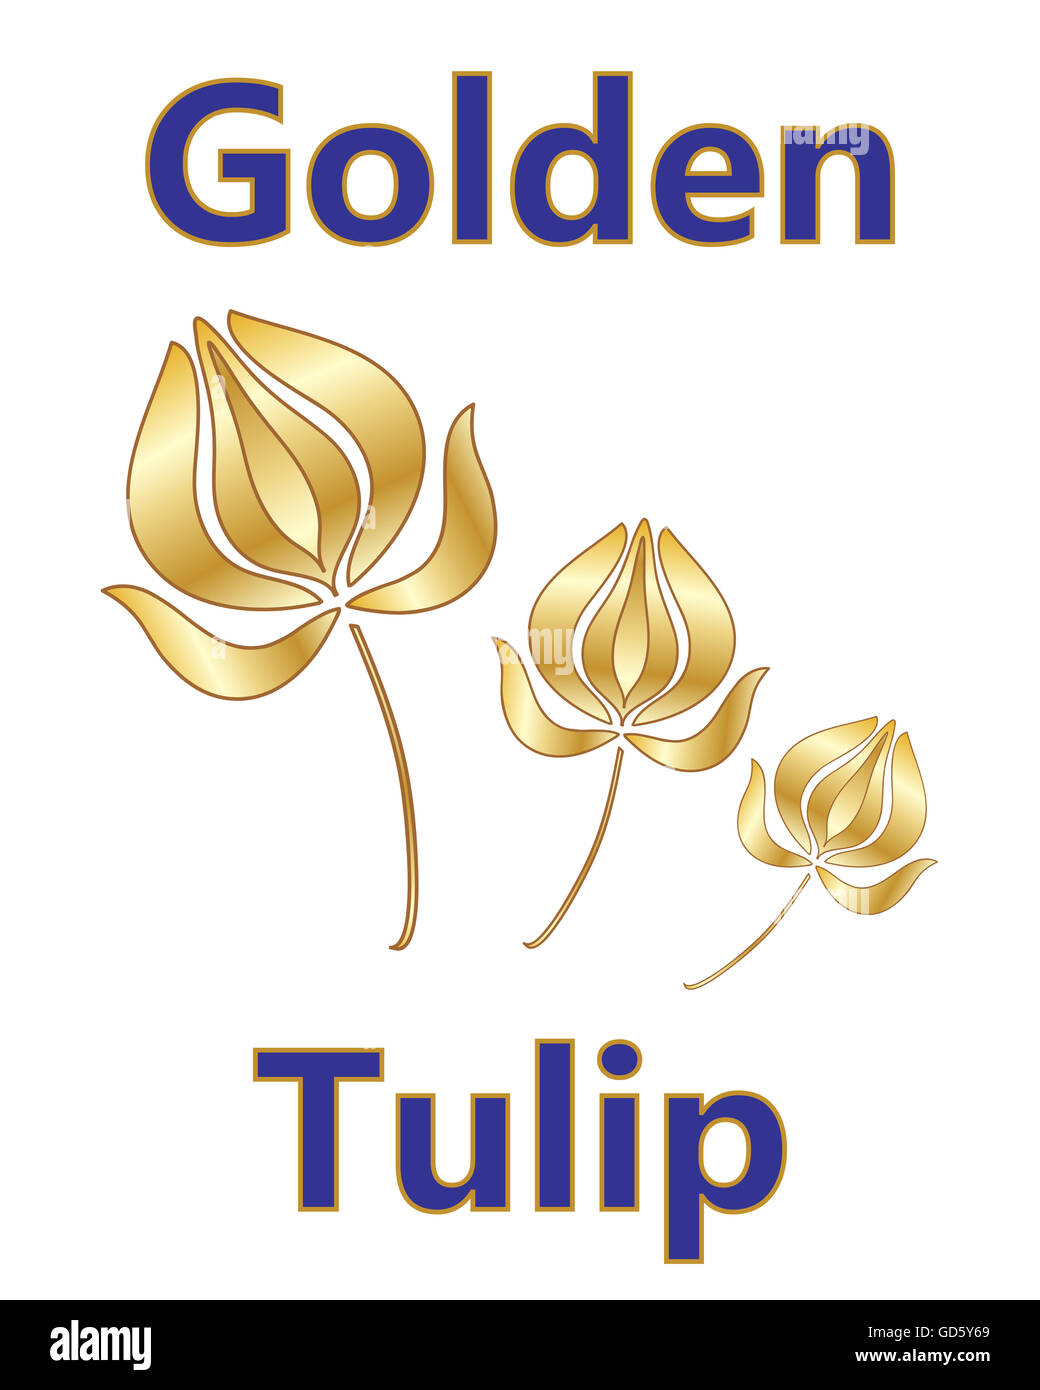 an illustration of a metallic golden tulip design with a stylized flower and blue and gold type on a white background - Stock Image